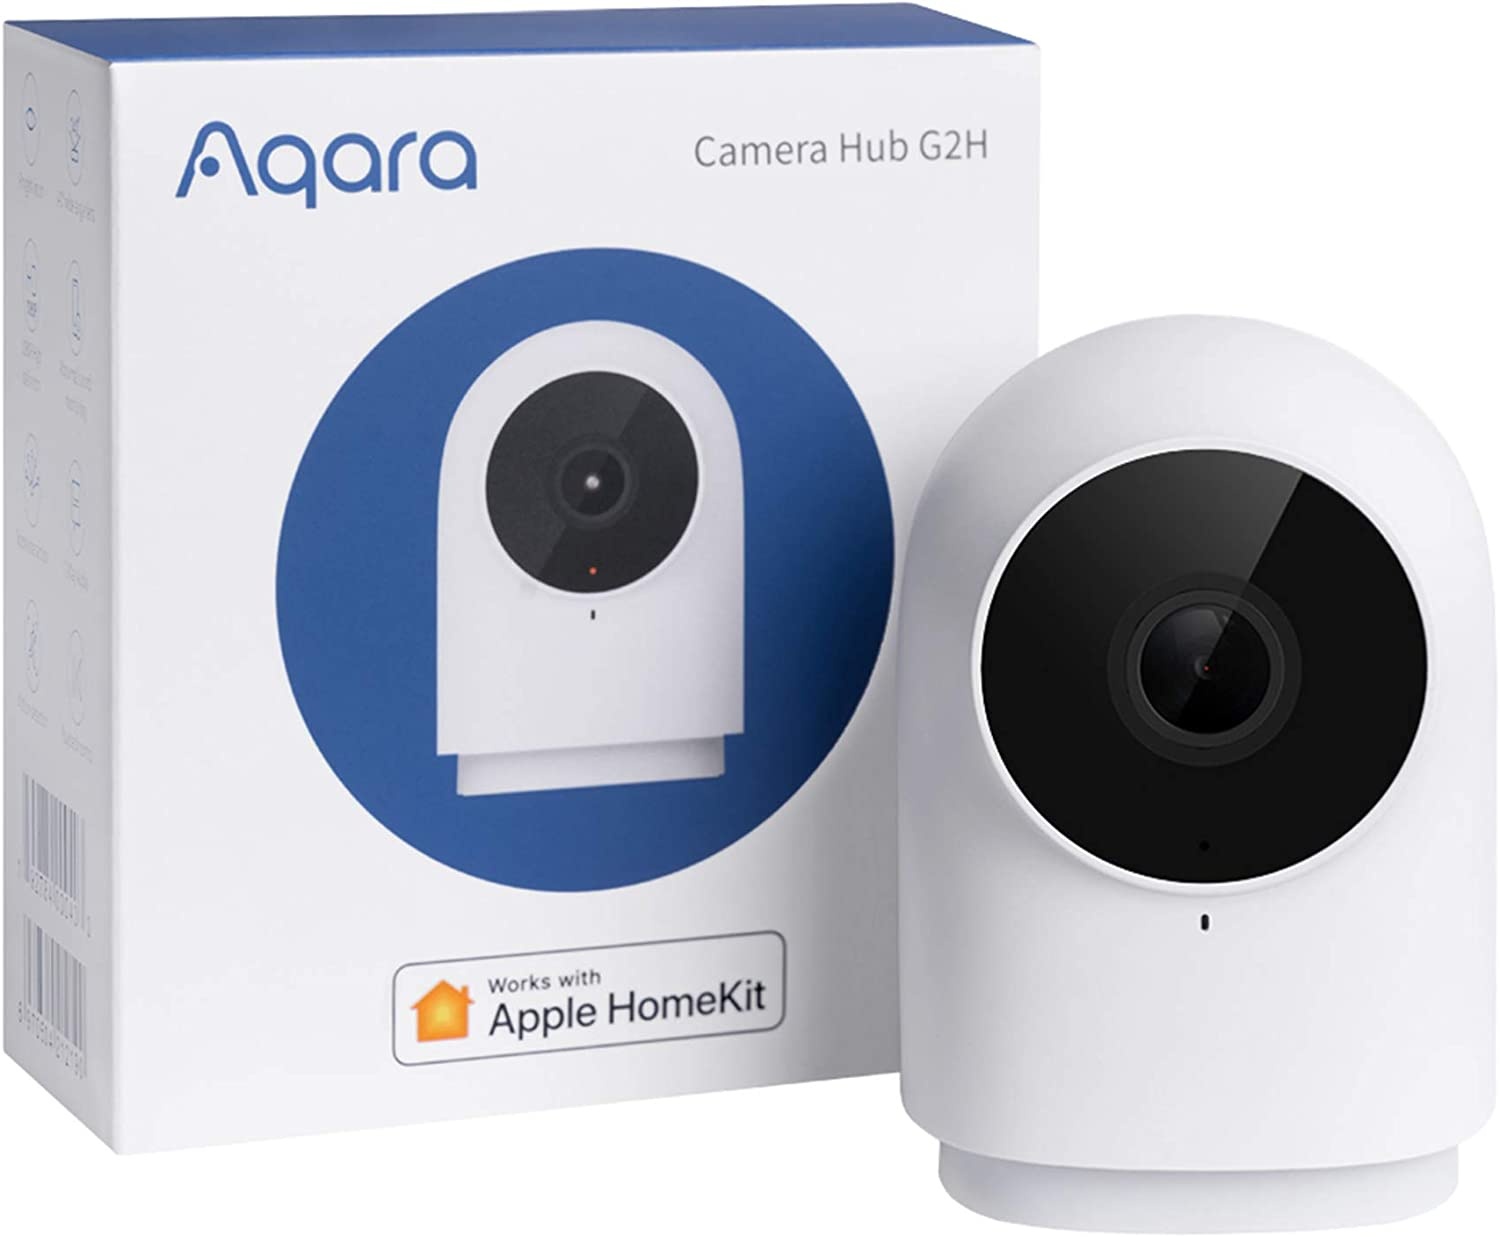 Aqara HomeKit Security Video Indoor Camera G2H, Night Vision, Two-Way Audio, 1080P HD Plug-in Indoor WIFI Camera, Family-Friendly Wireless Video Surveillance System, Smart Home Bridge for Alarm System